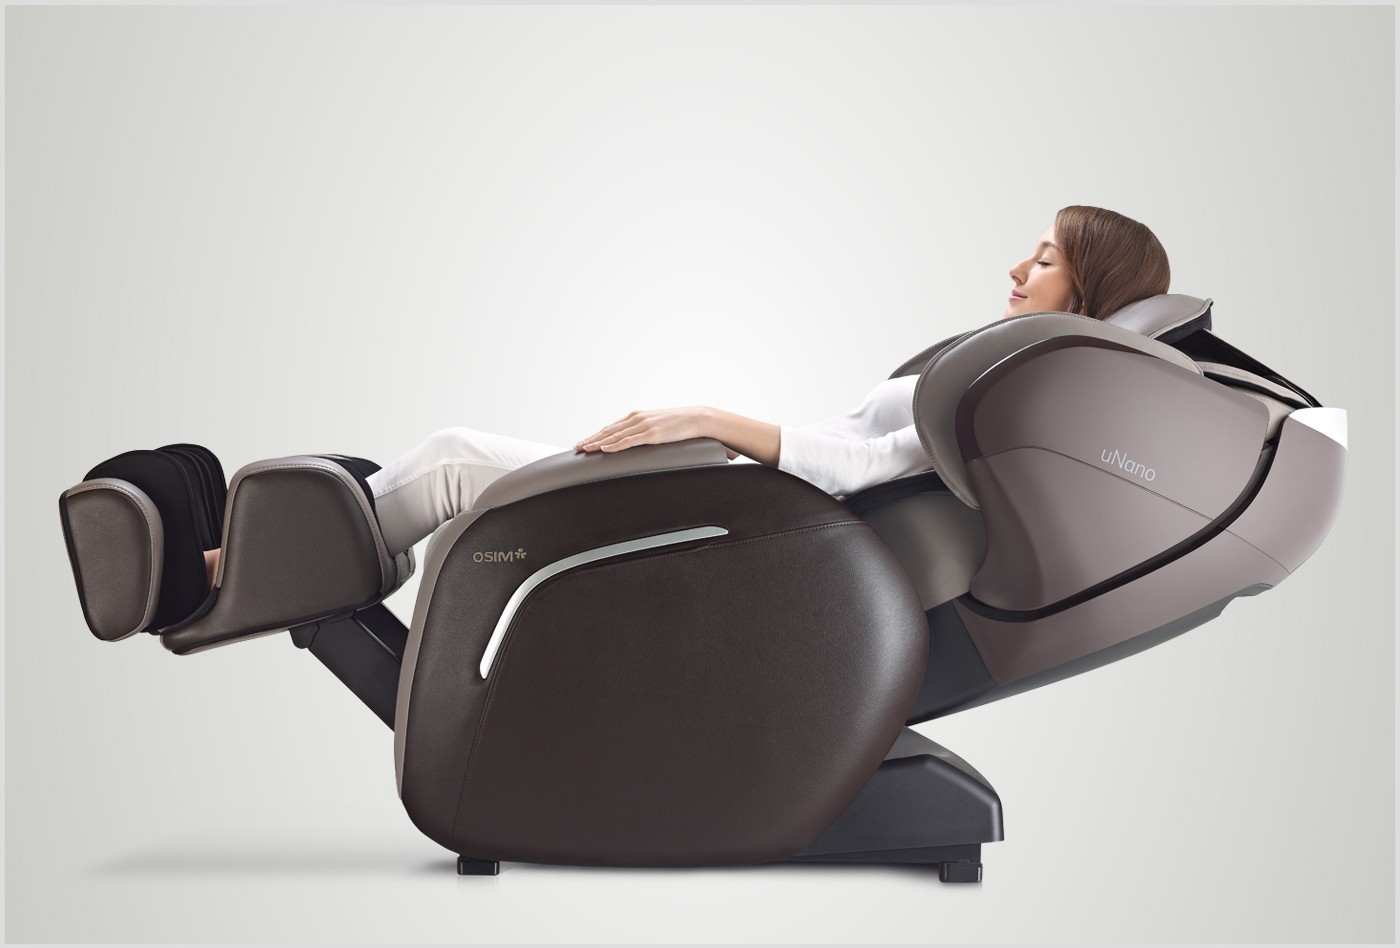 extended ulove years osim singapore massage keyimage for chair extendedwarranty warranty